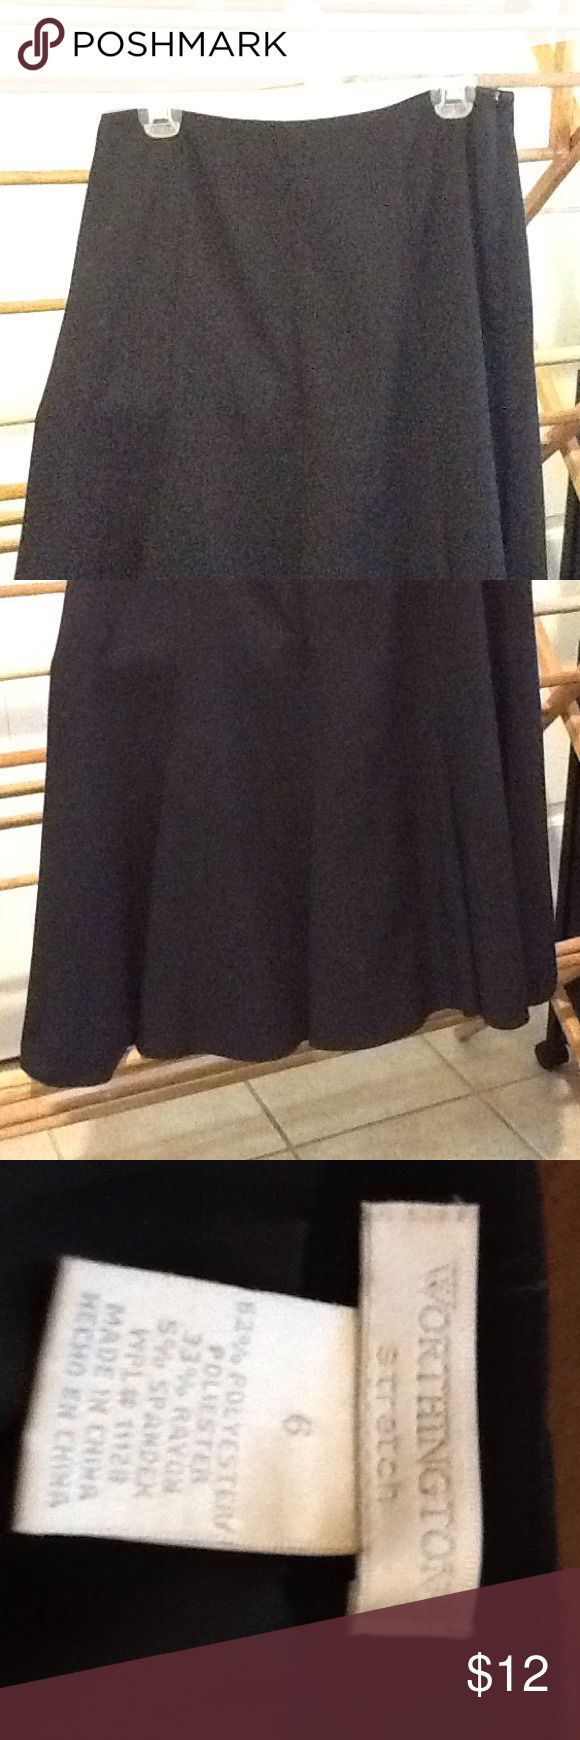 Women's Black Swing Skirt Size 6 Worthington Vintage size 6 black polyester, rayon and spandex swing skirt by Worthington stretch. Lined. Flared at the hem. Zipper on the side. In great condition. Worthington Skirts A-Line or Full